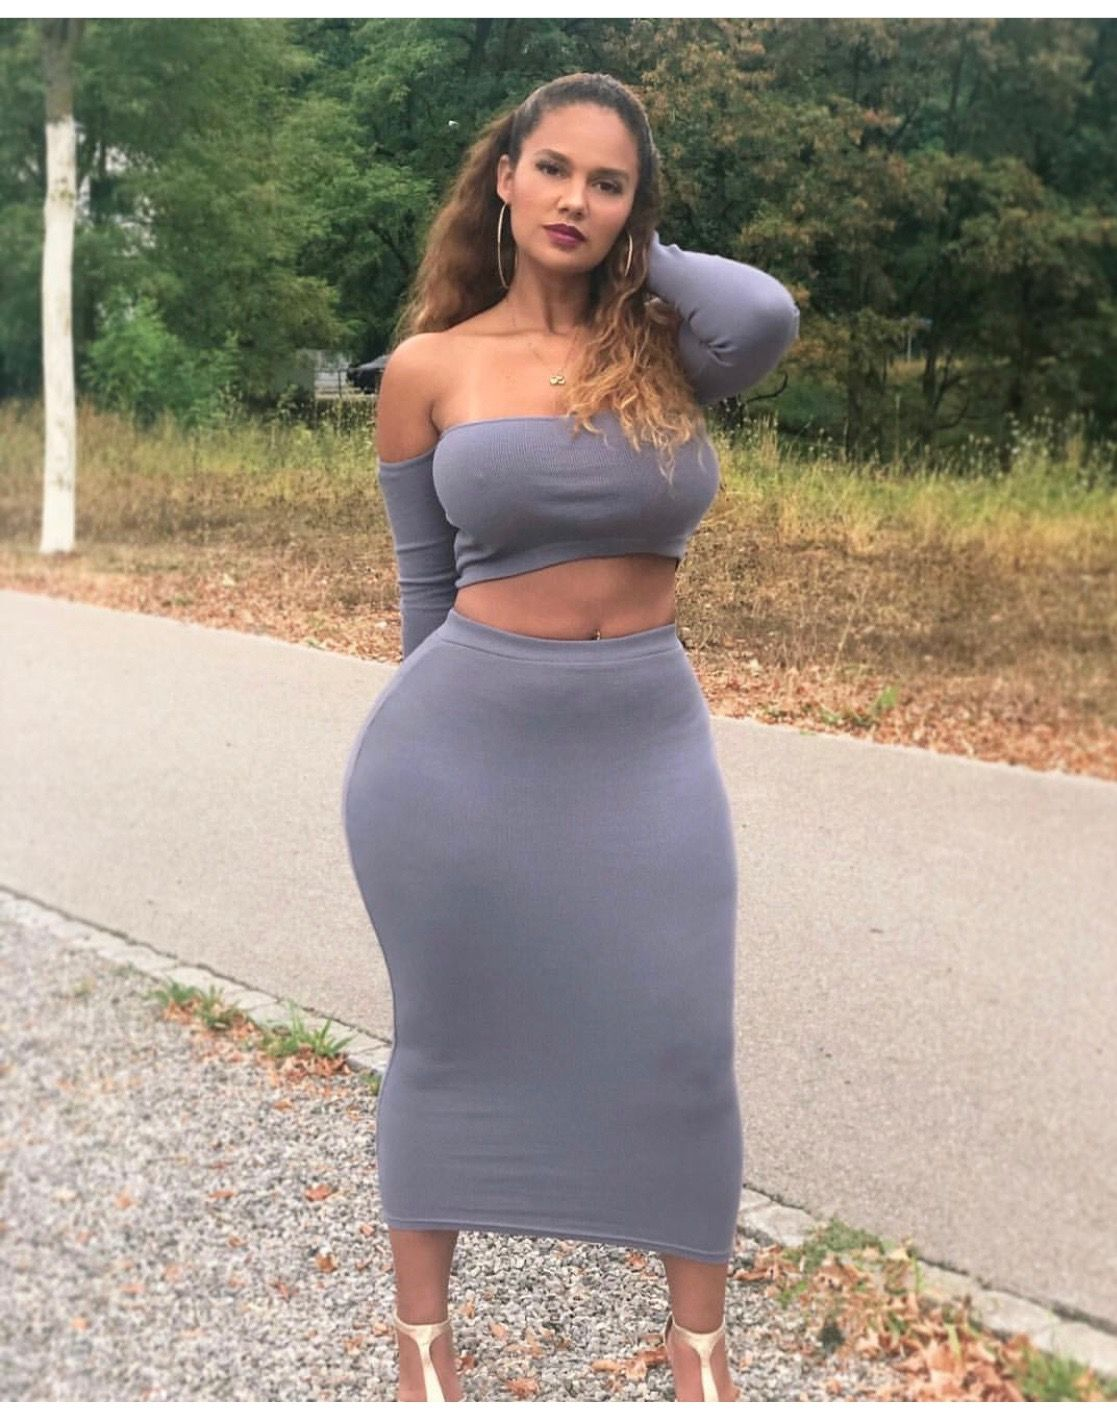 Pictures of beautiful thick women